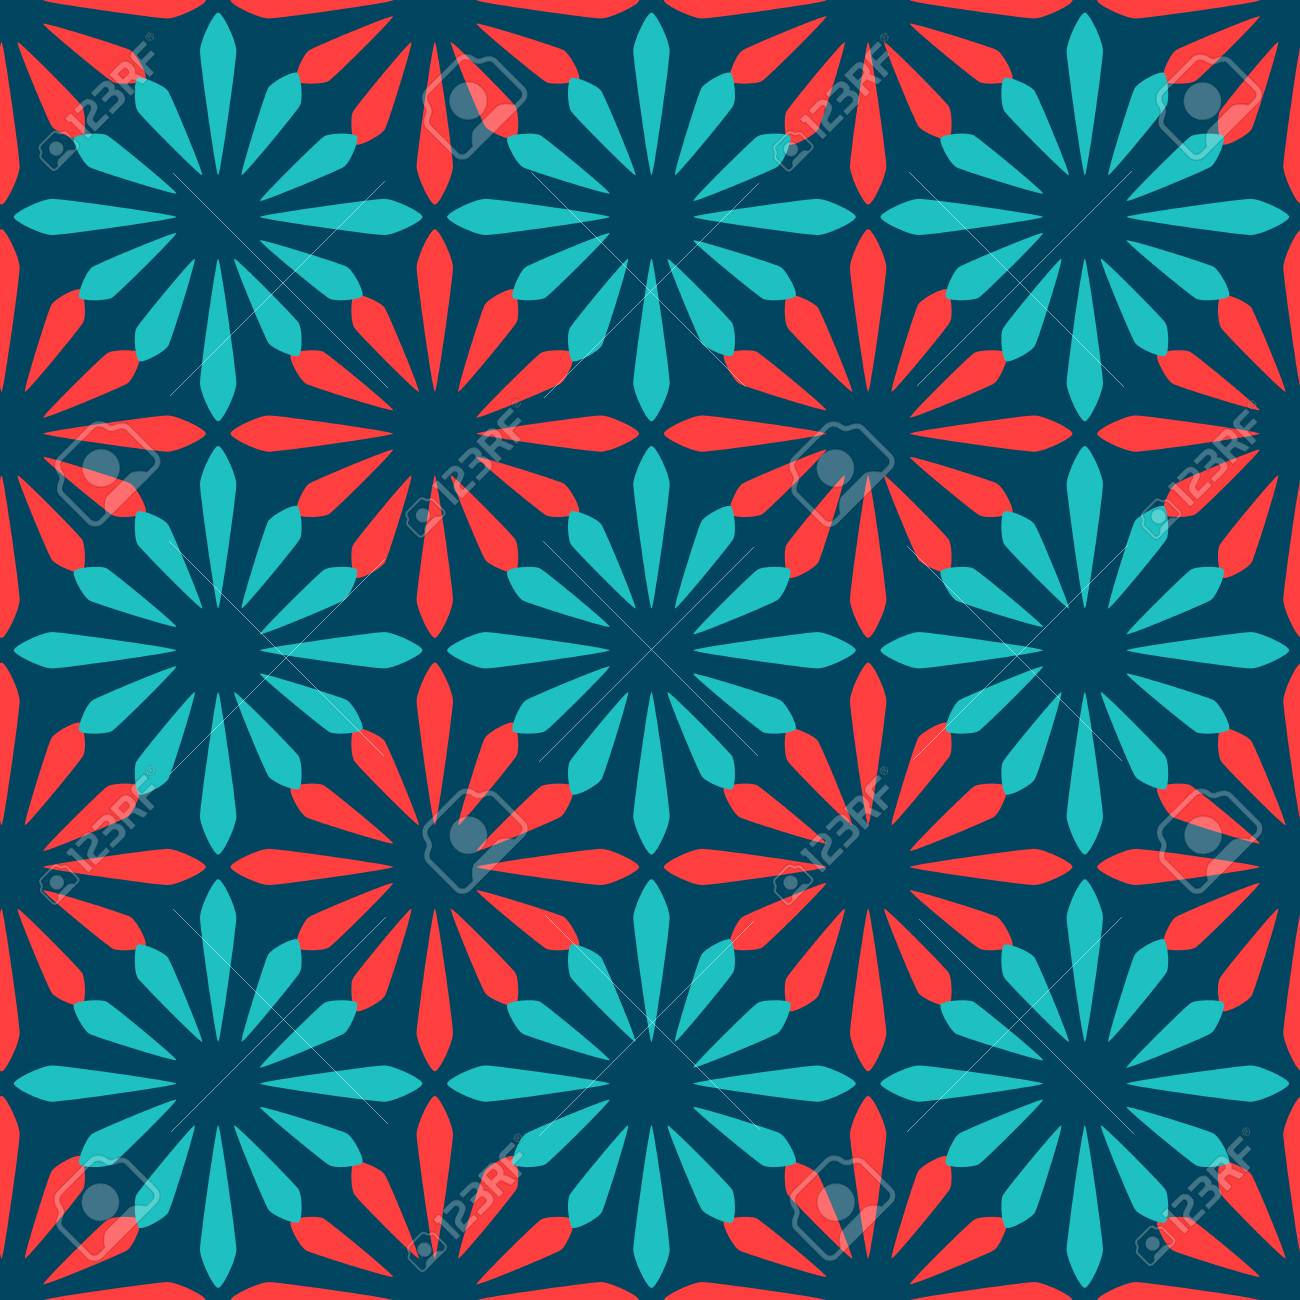 Blue And Red Spanish Ornamental Ceramic Tile Vector Design Royalty ...